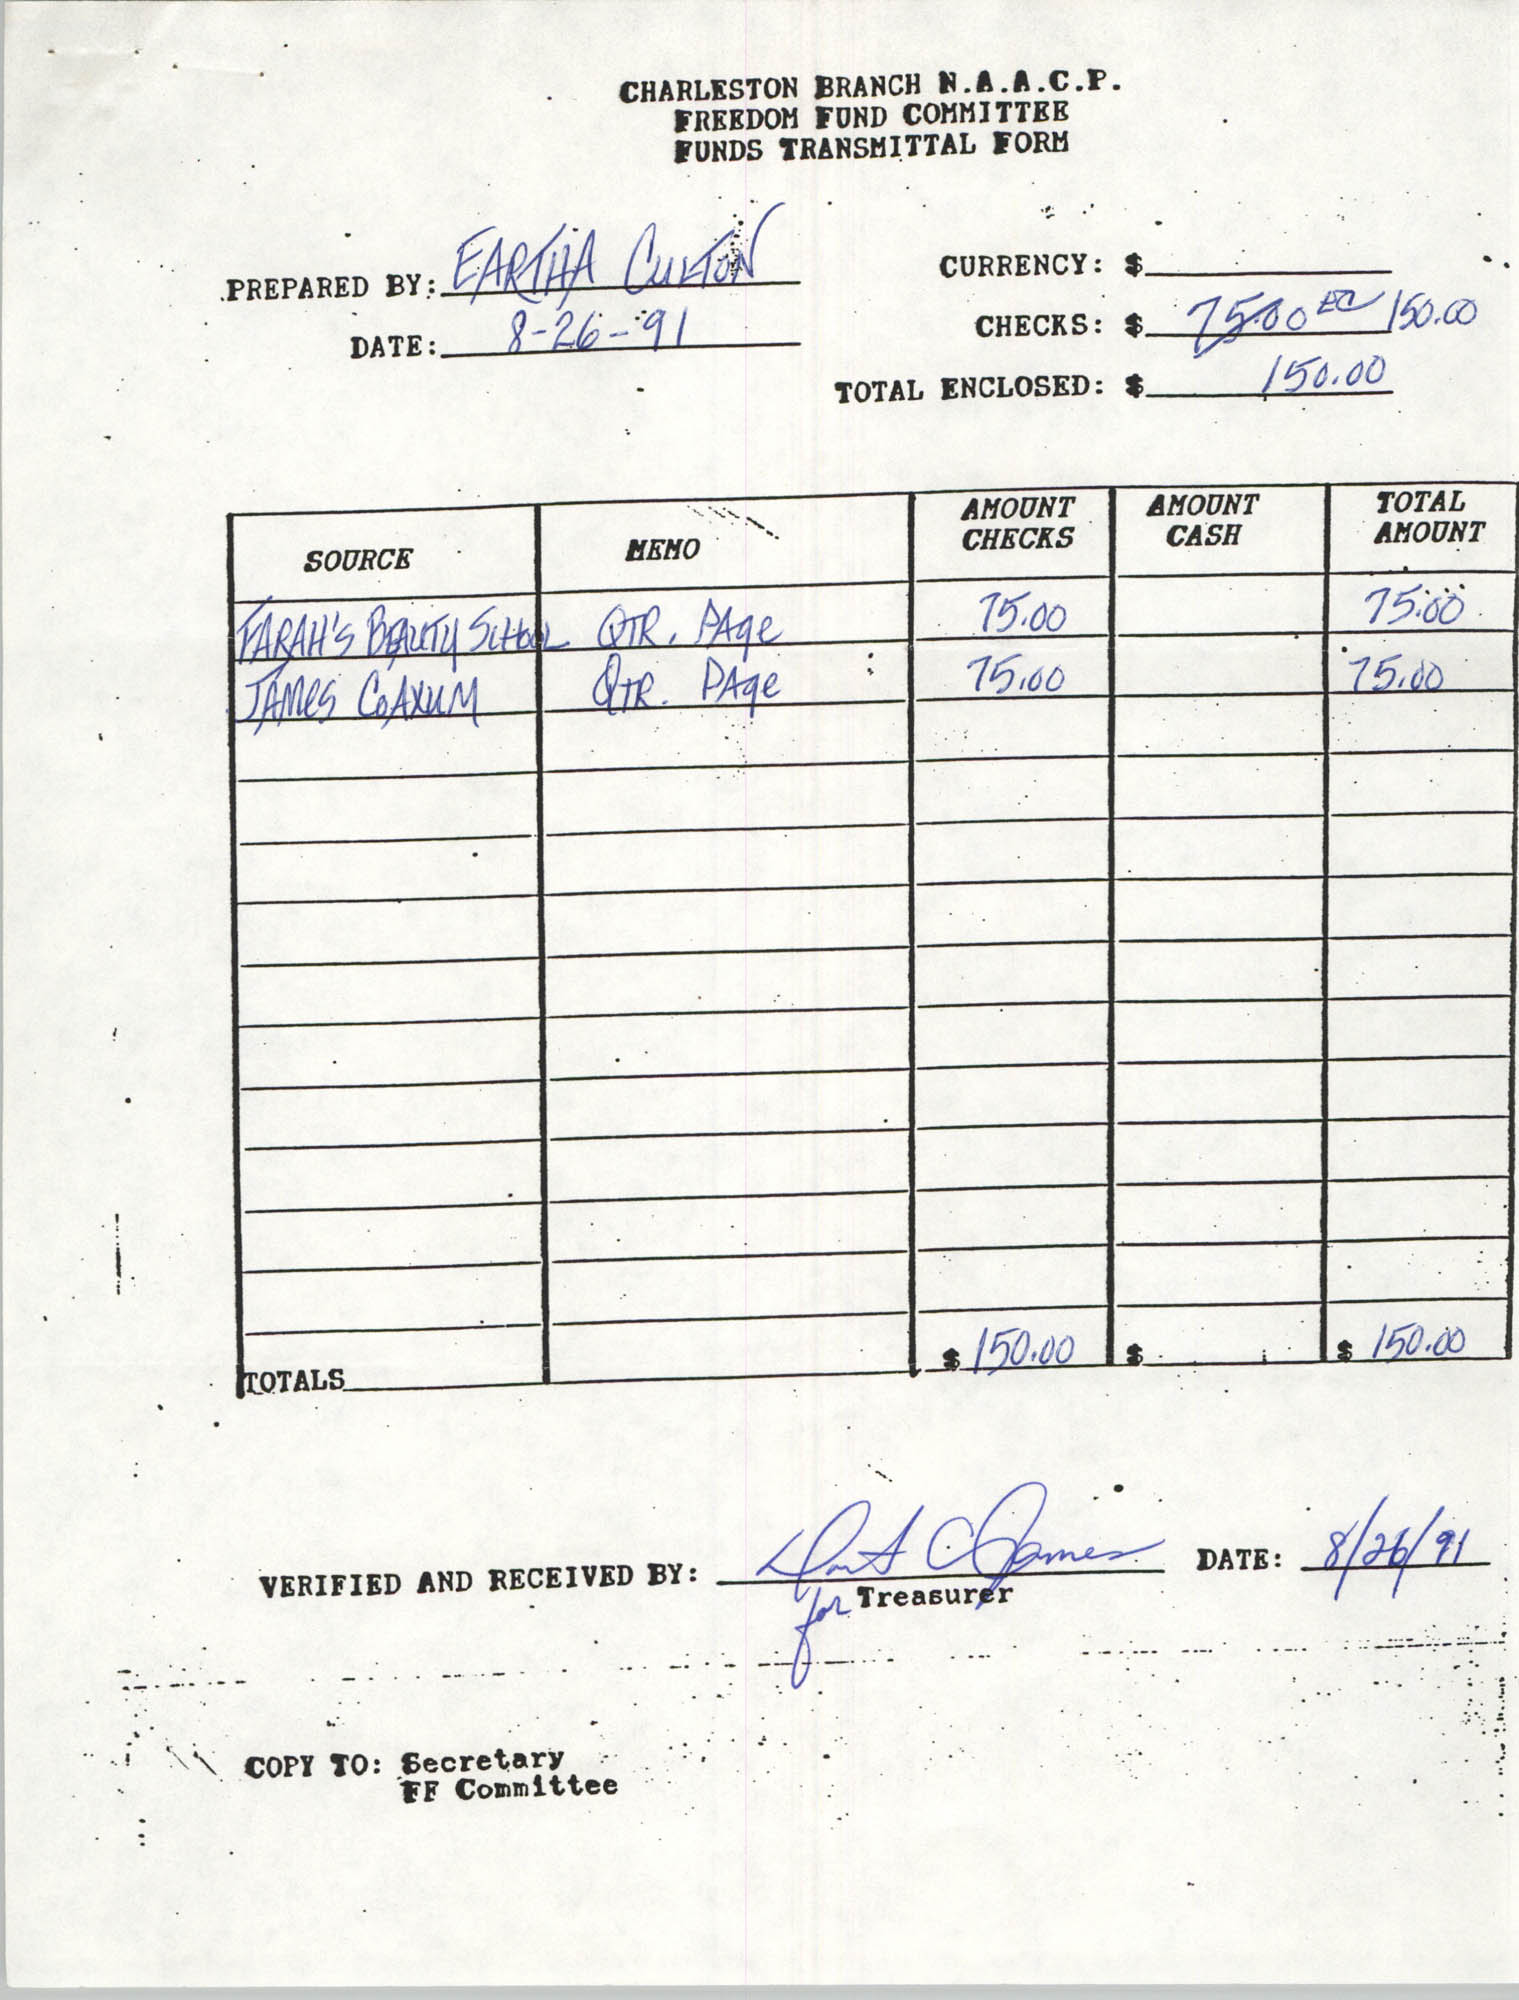 Charleston Branch of the NAACP Funds Transmittal Forms, August 1991, Page 31